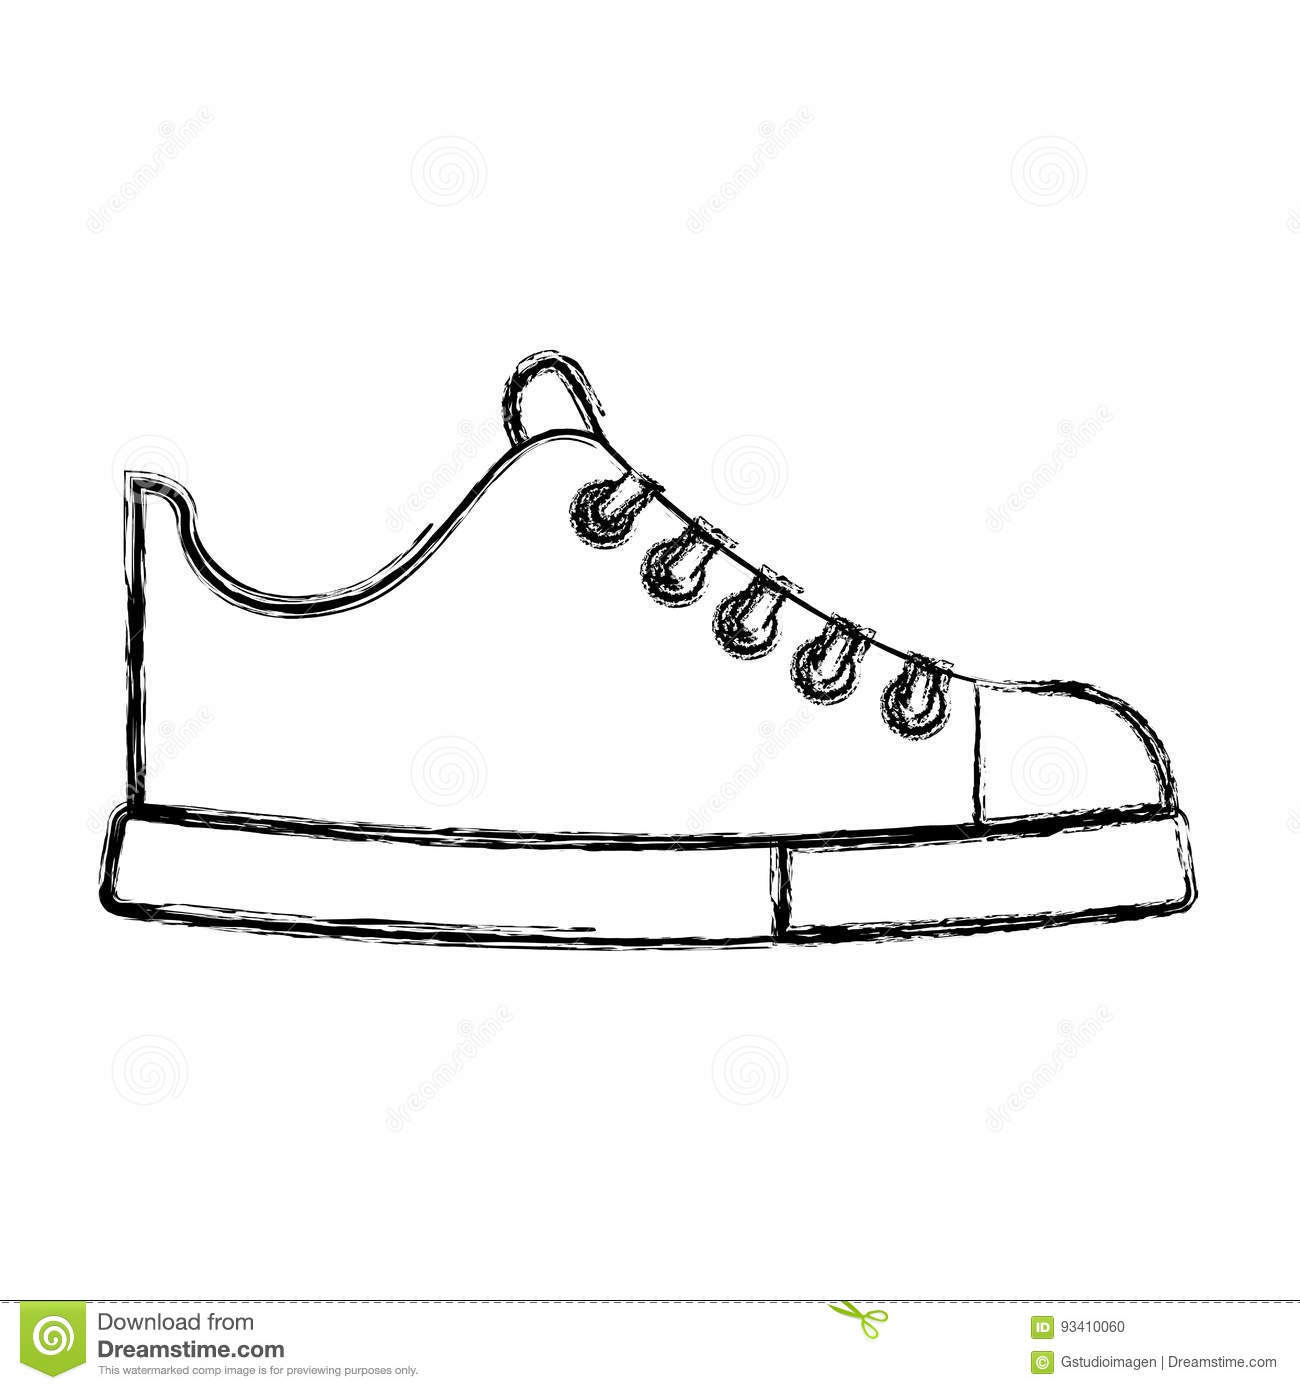 how to draw cartoon shoes how to draw cartoon feet shoes when drawing comics cartoon to shoes draw how